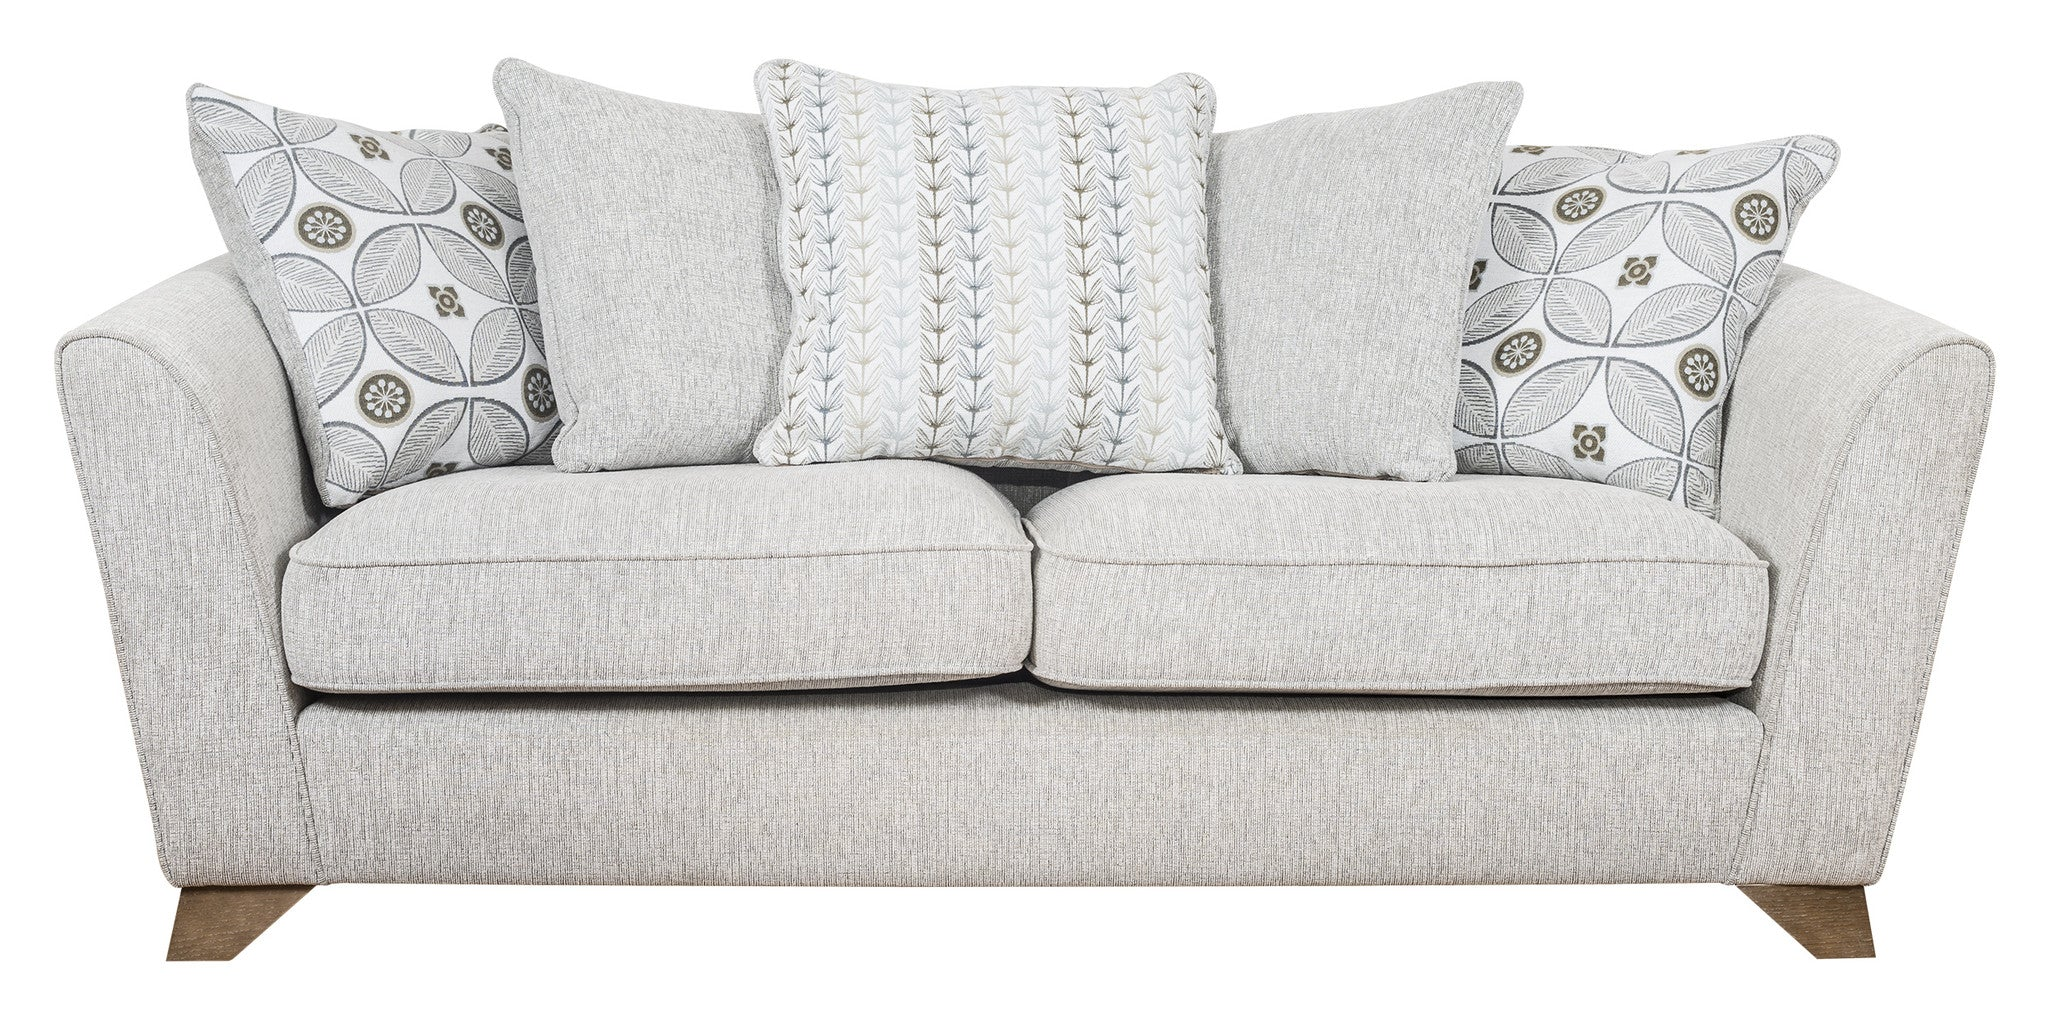 Fabio 3 Seater Sofa – The Superior Sofa pany